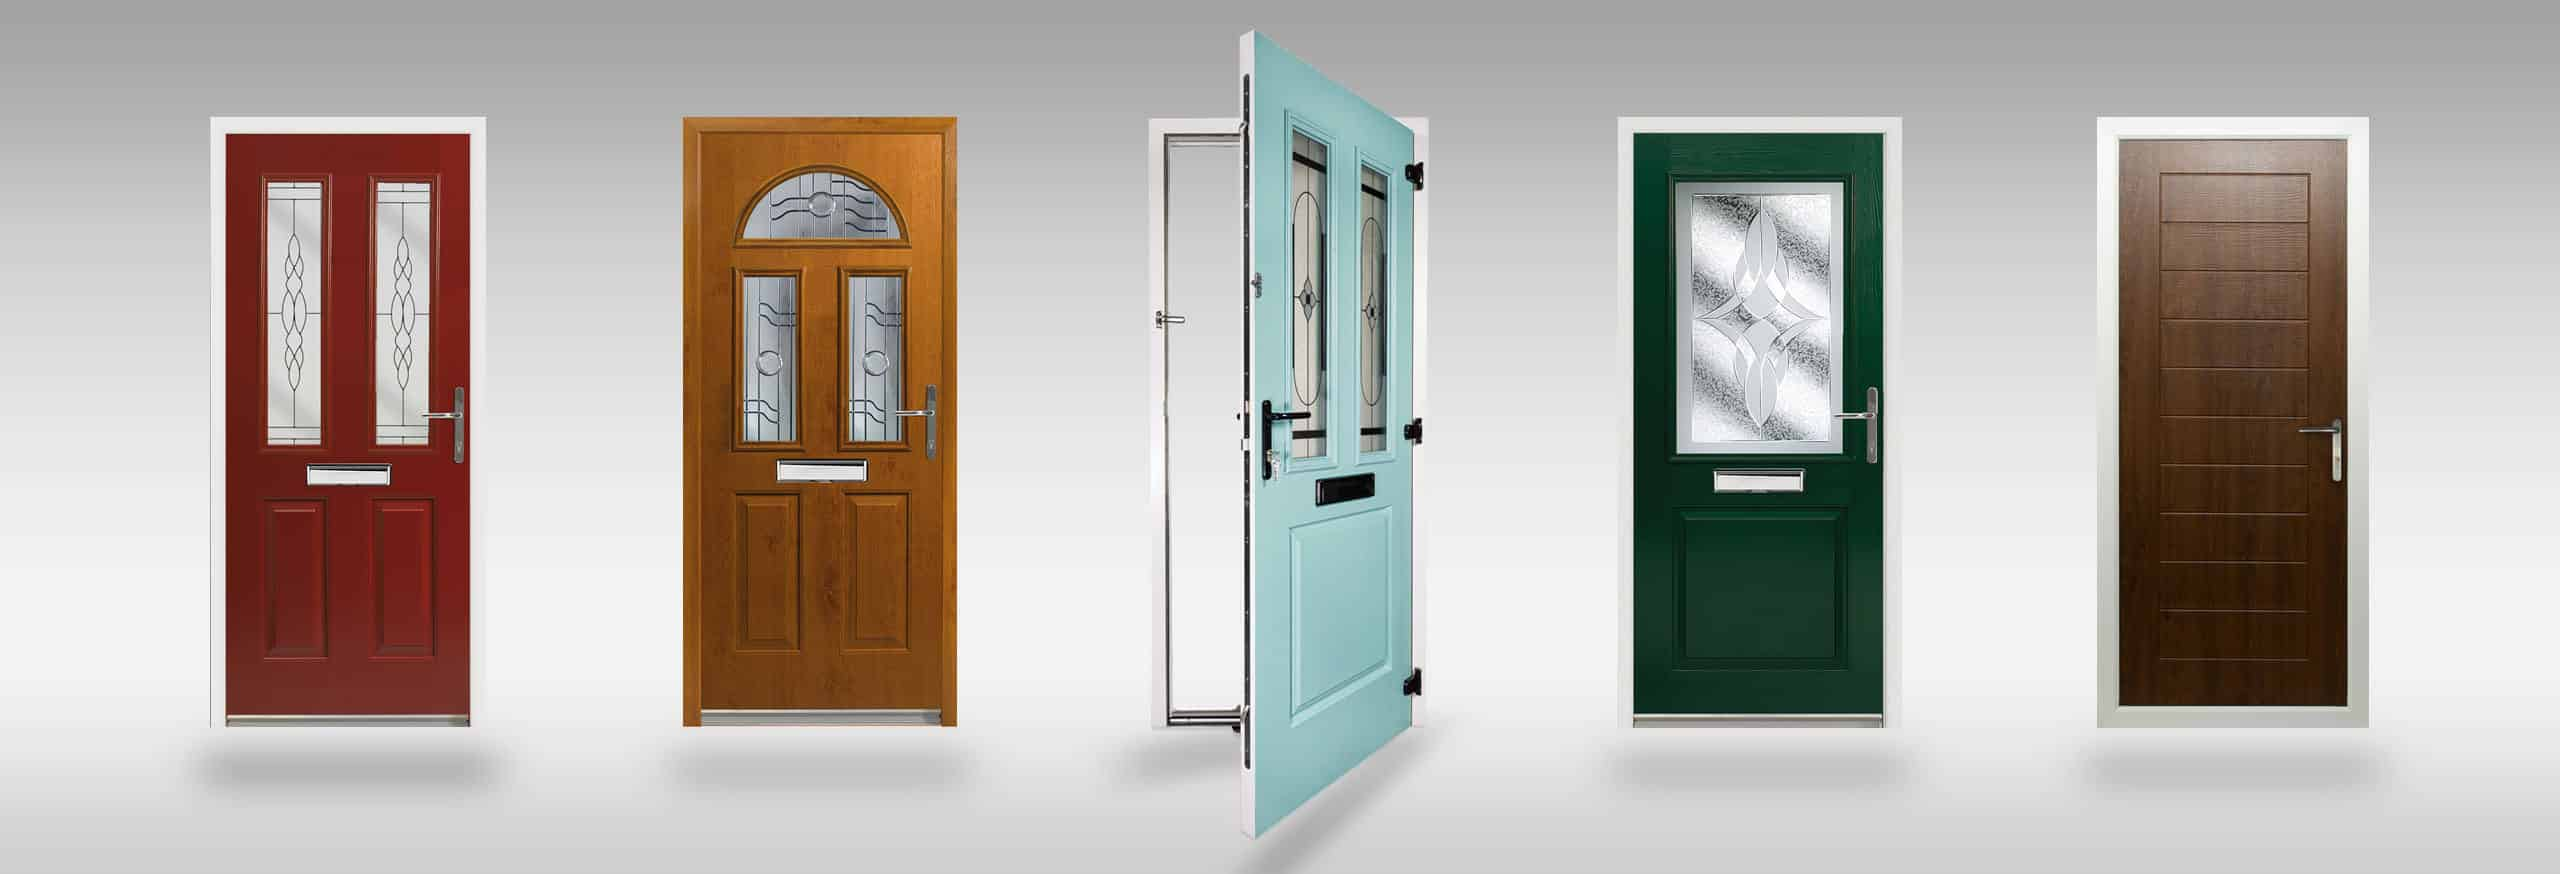 Composite materials composite doors durable doors for Composite windows